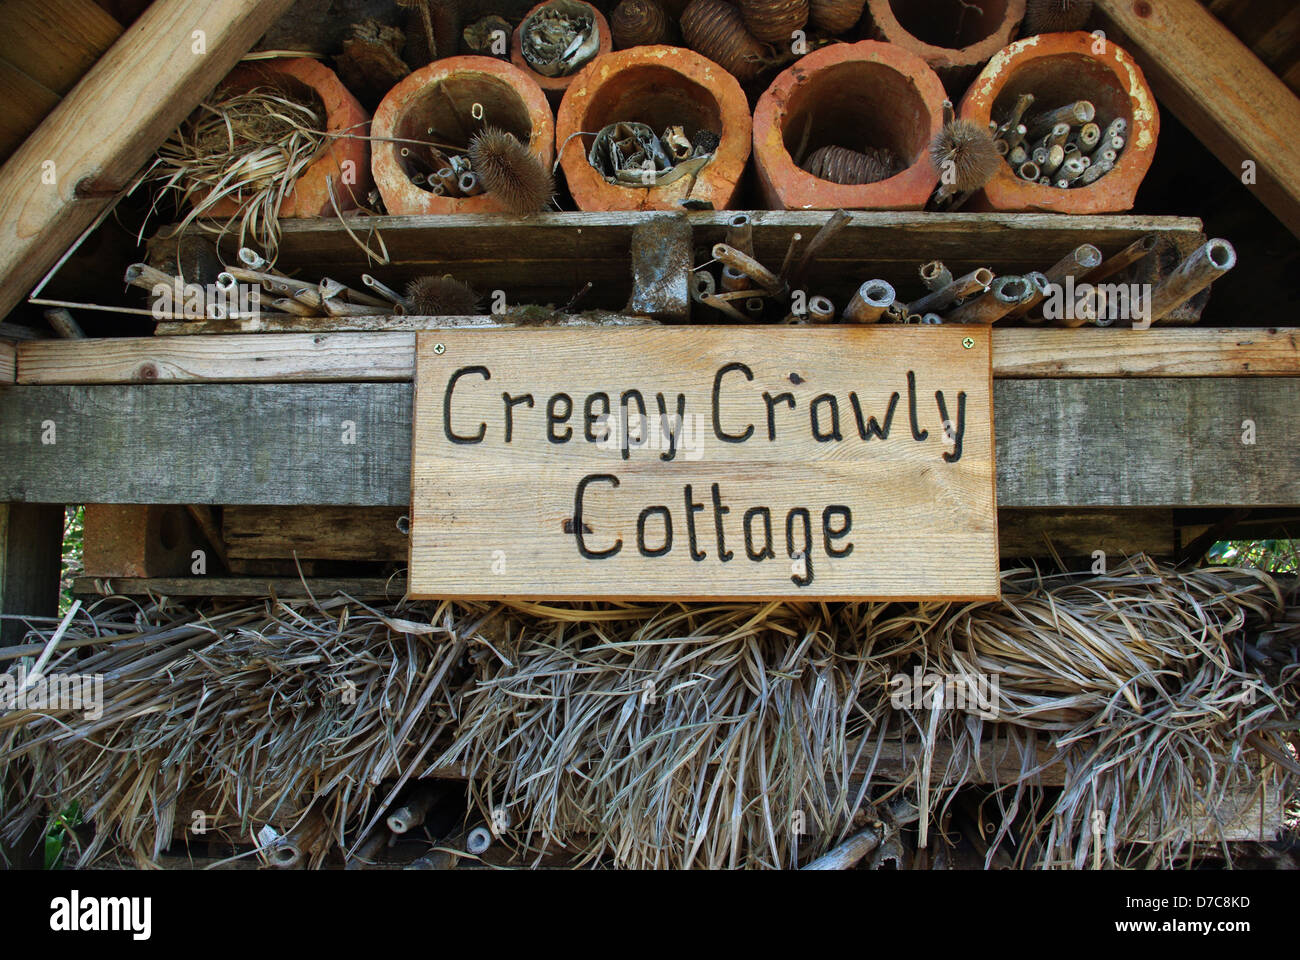 Creepy Crawly Cottage, a constructed habitat for insects. - Stock Image